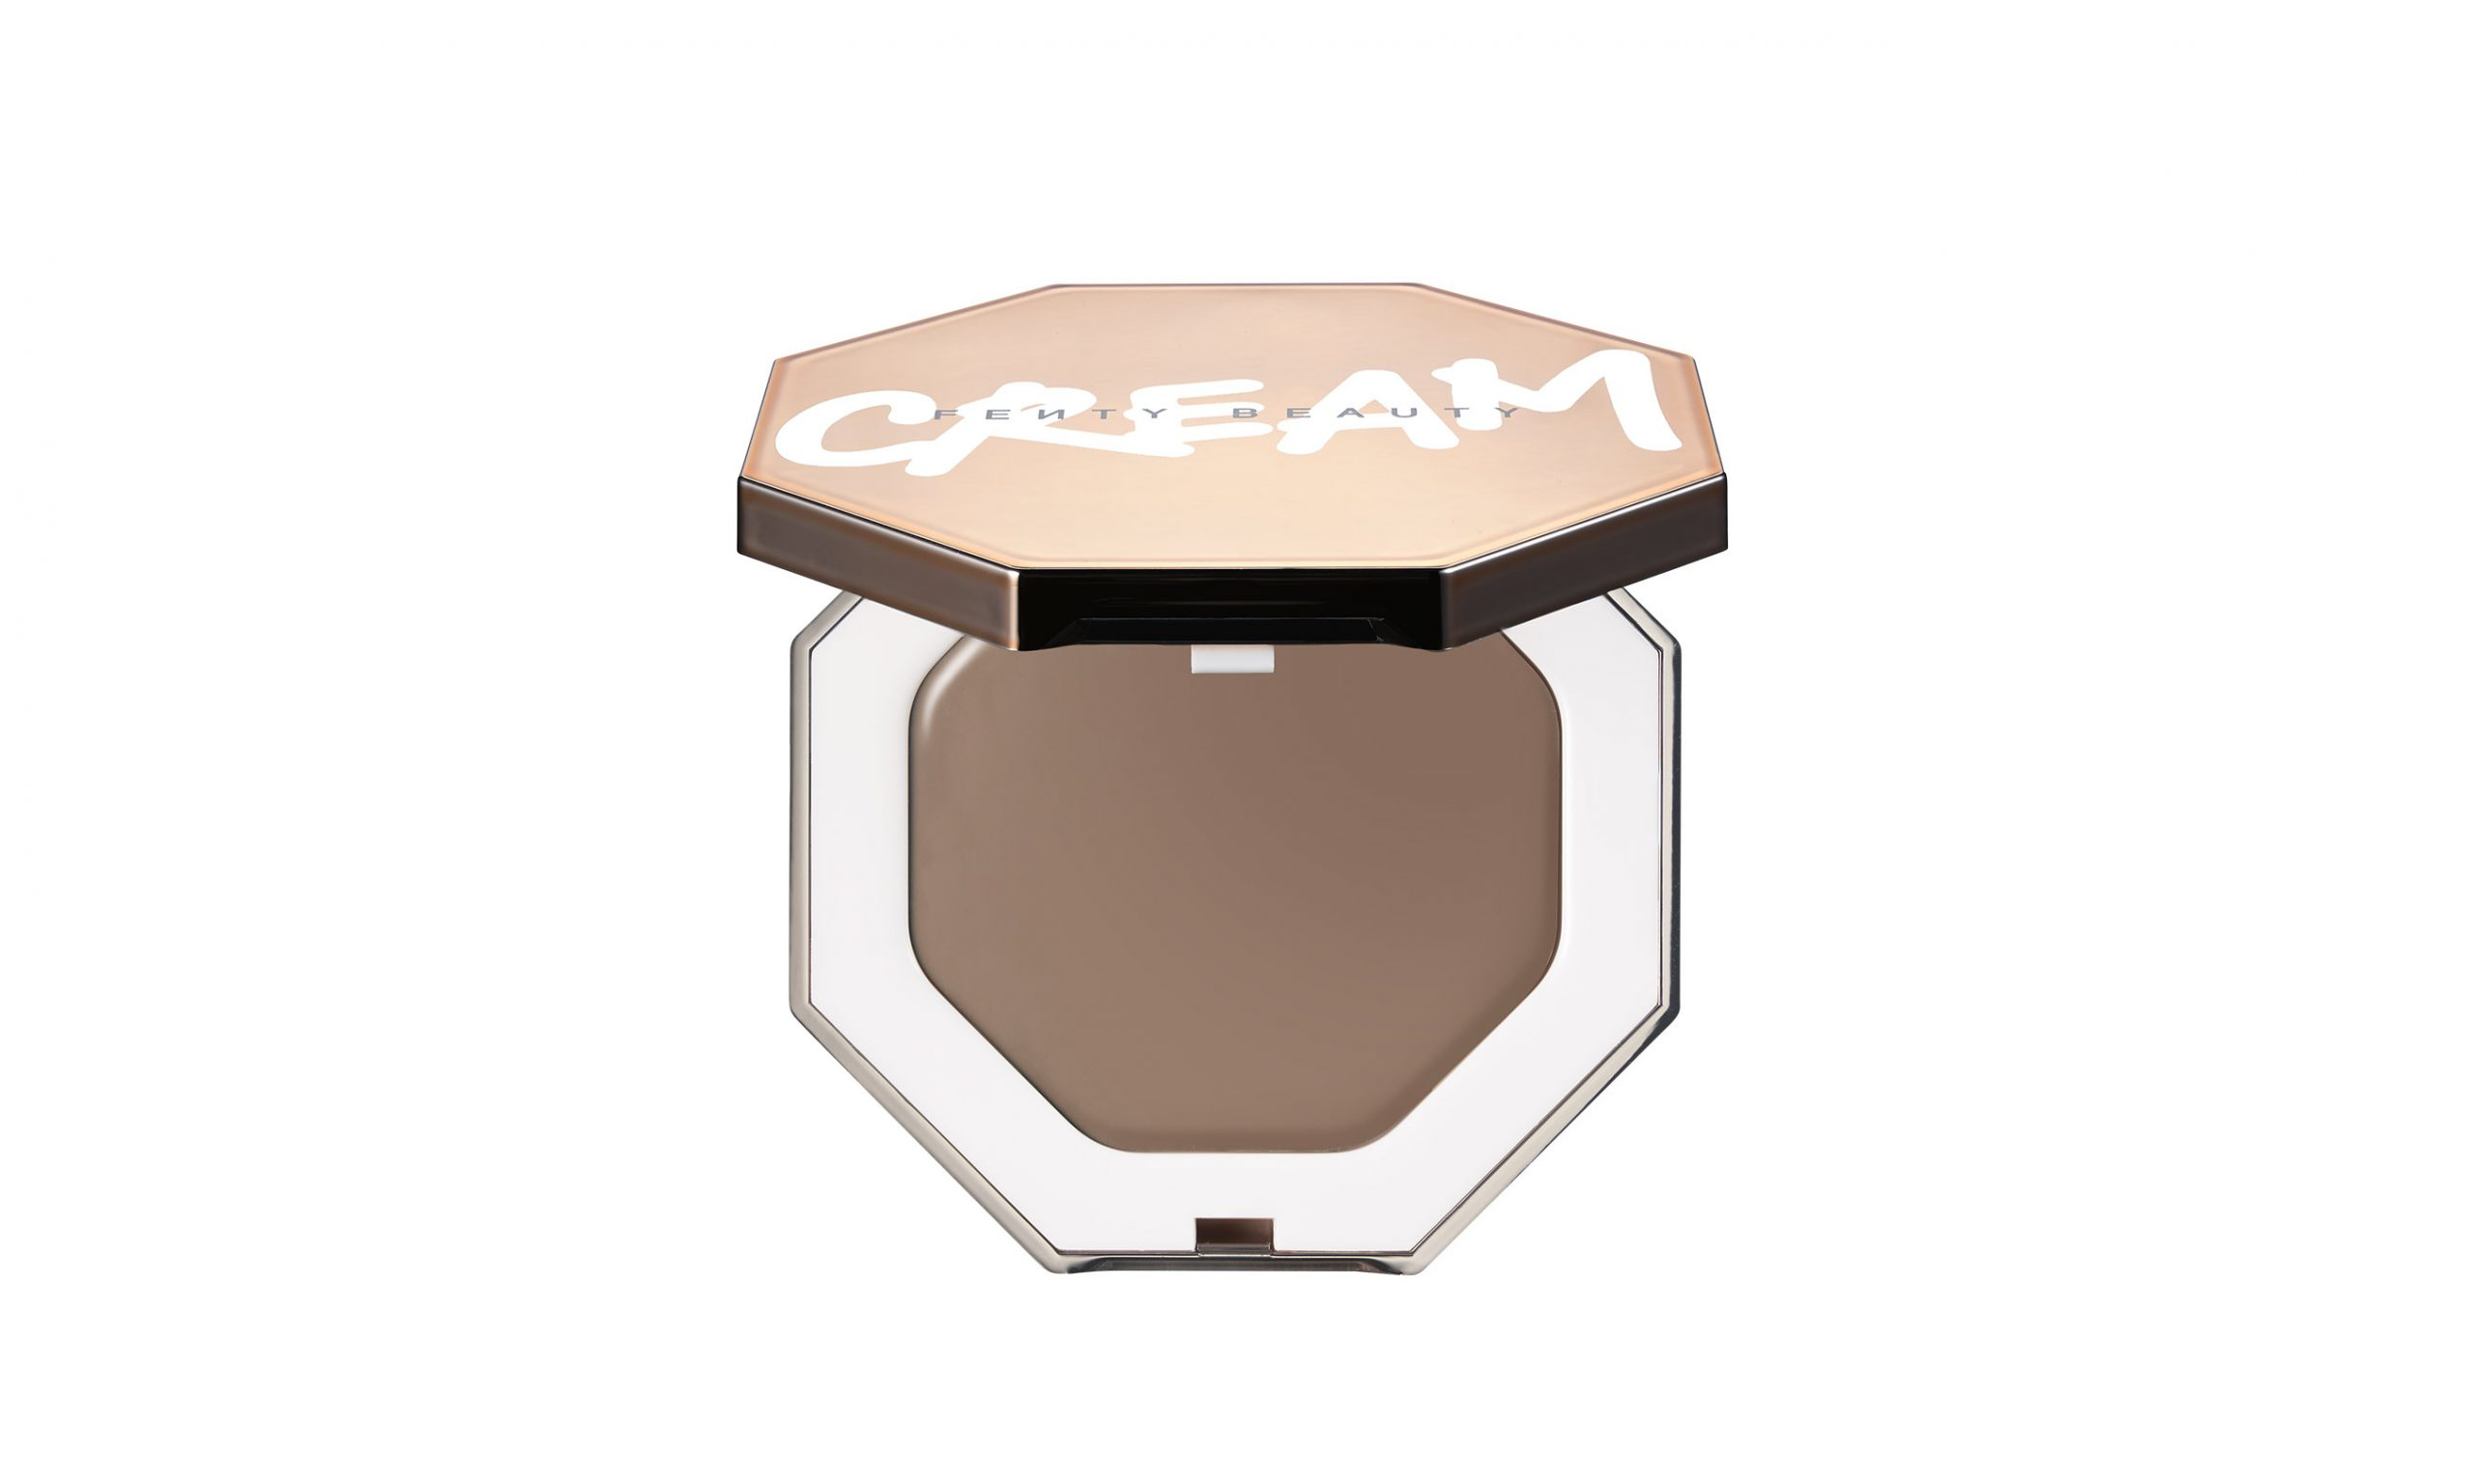 Fenty Beauty 全新推出 Cheeks Out 古铜膏及腮红膏